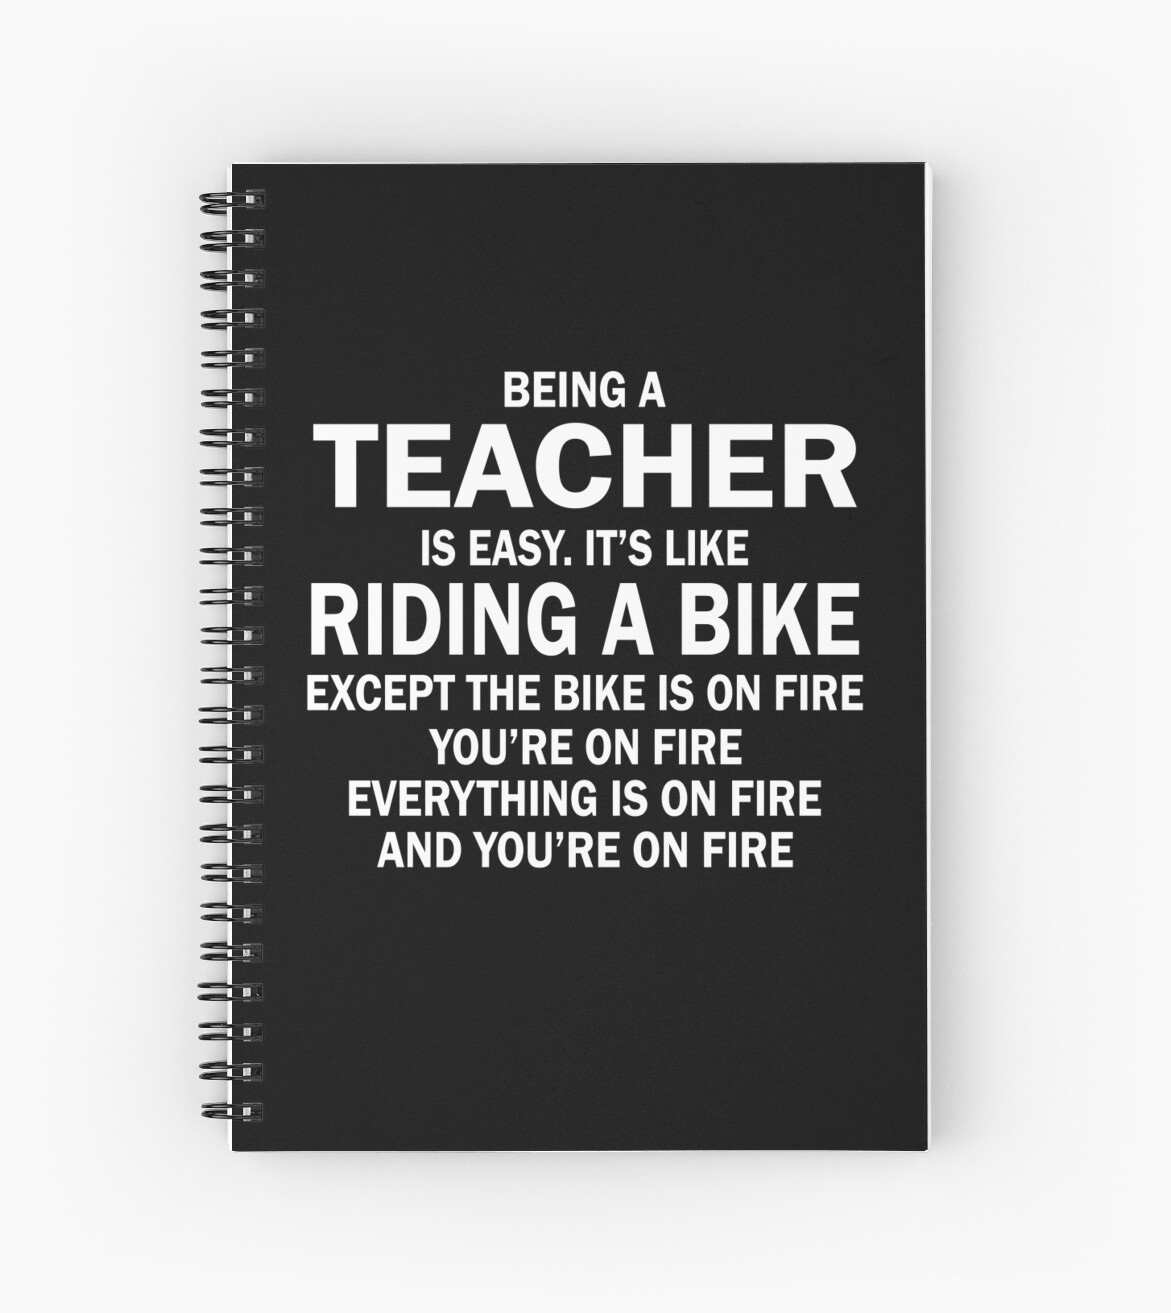 BEING A TEACHER IS EASY.IT'S LIKE RIDING A BIKE EXCEPT THE BIKE IS ...